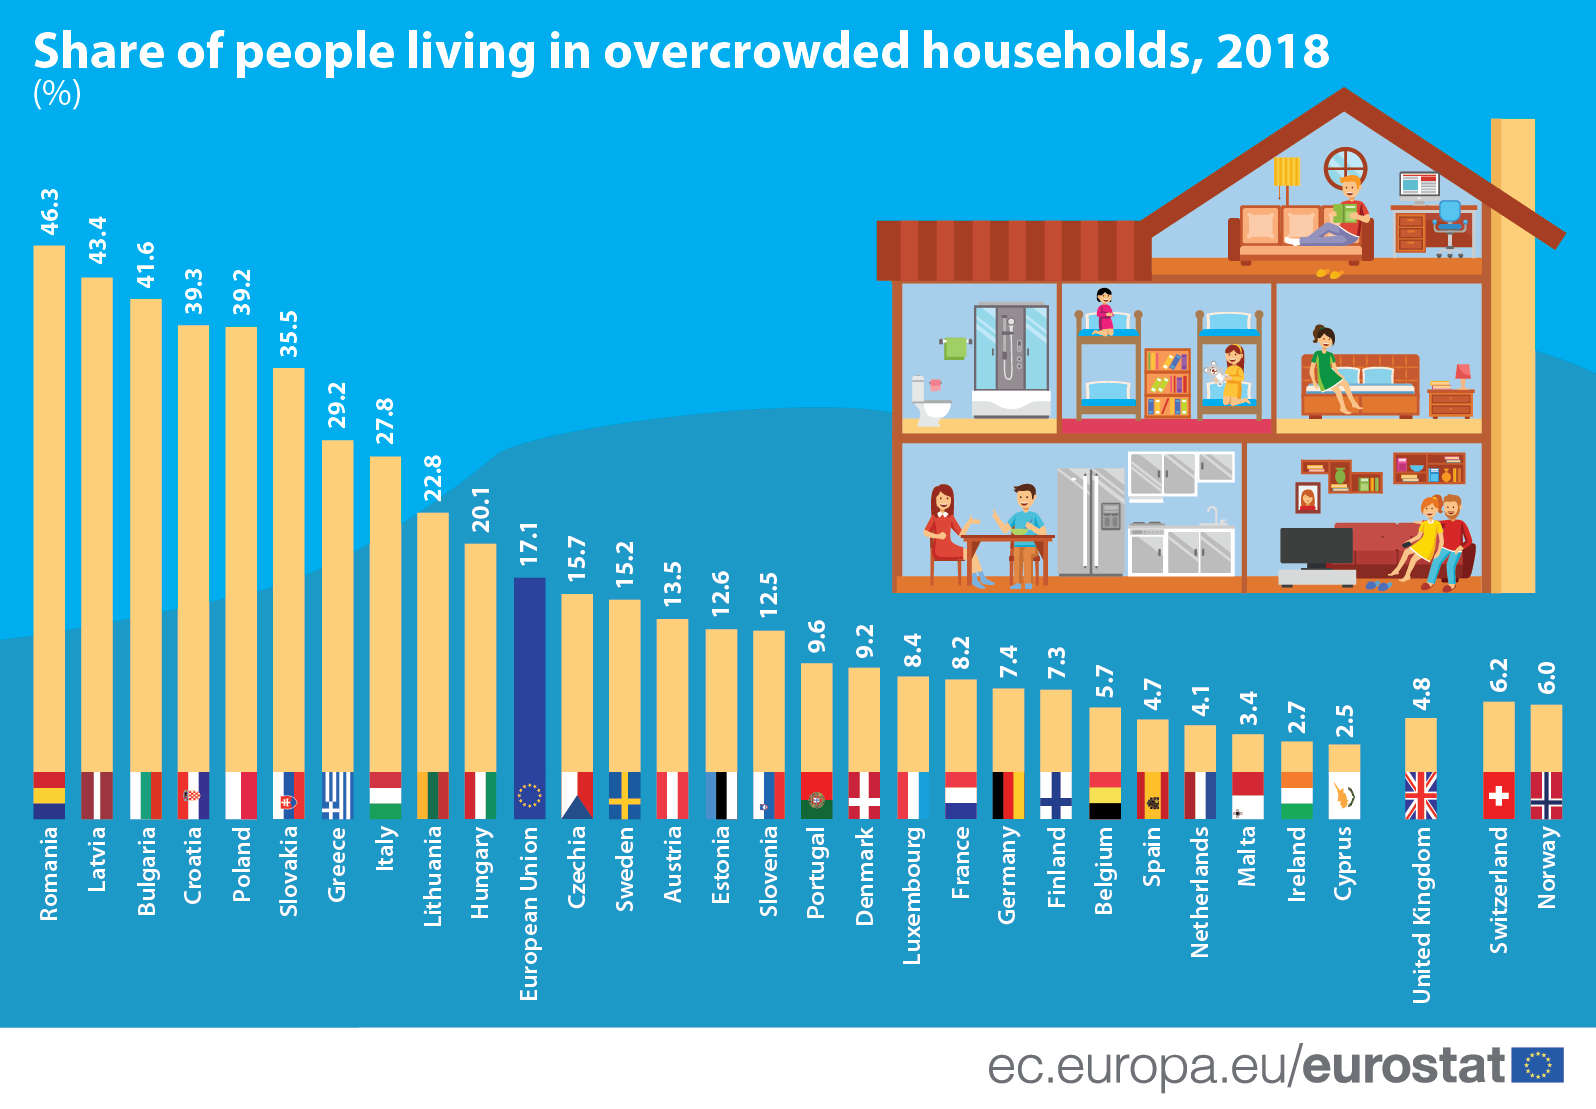 Bar chart/Infographic: Share of people living in overcrowded households, 2018 (%)